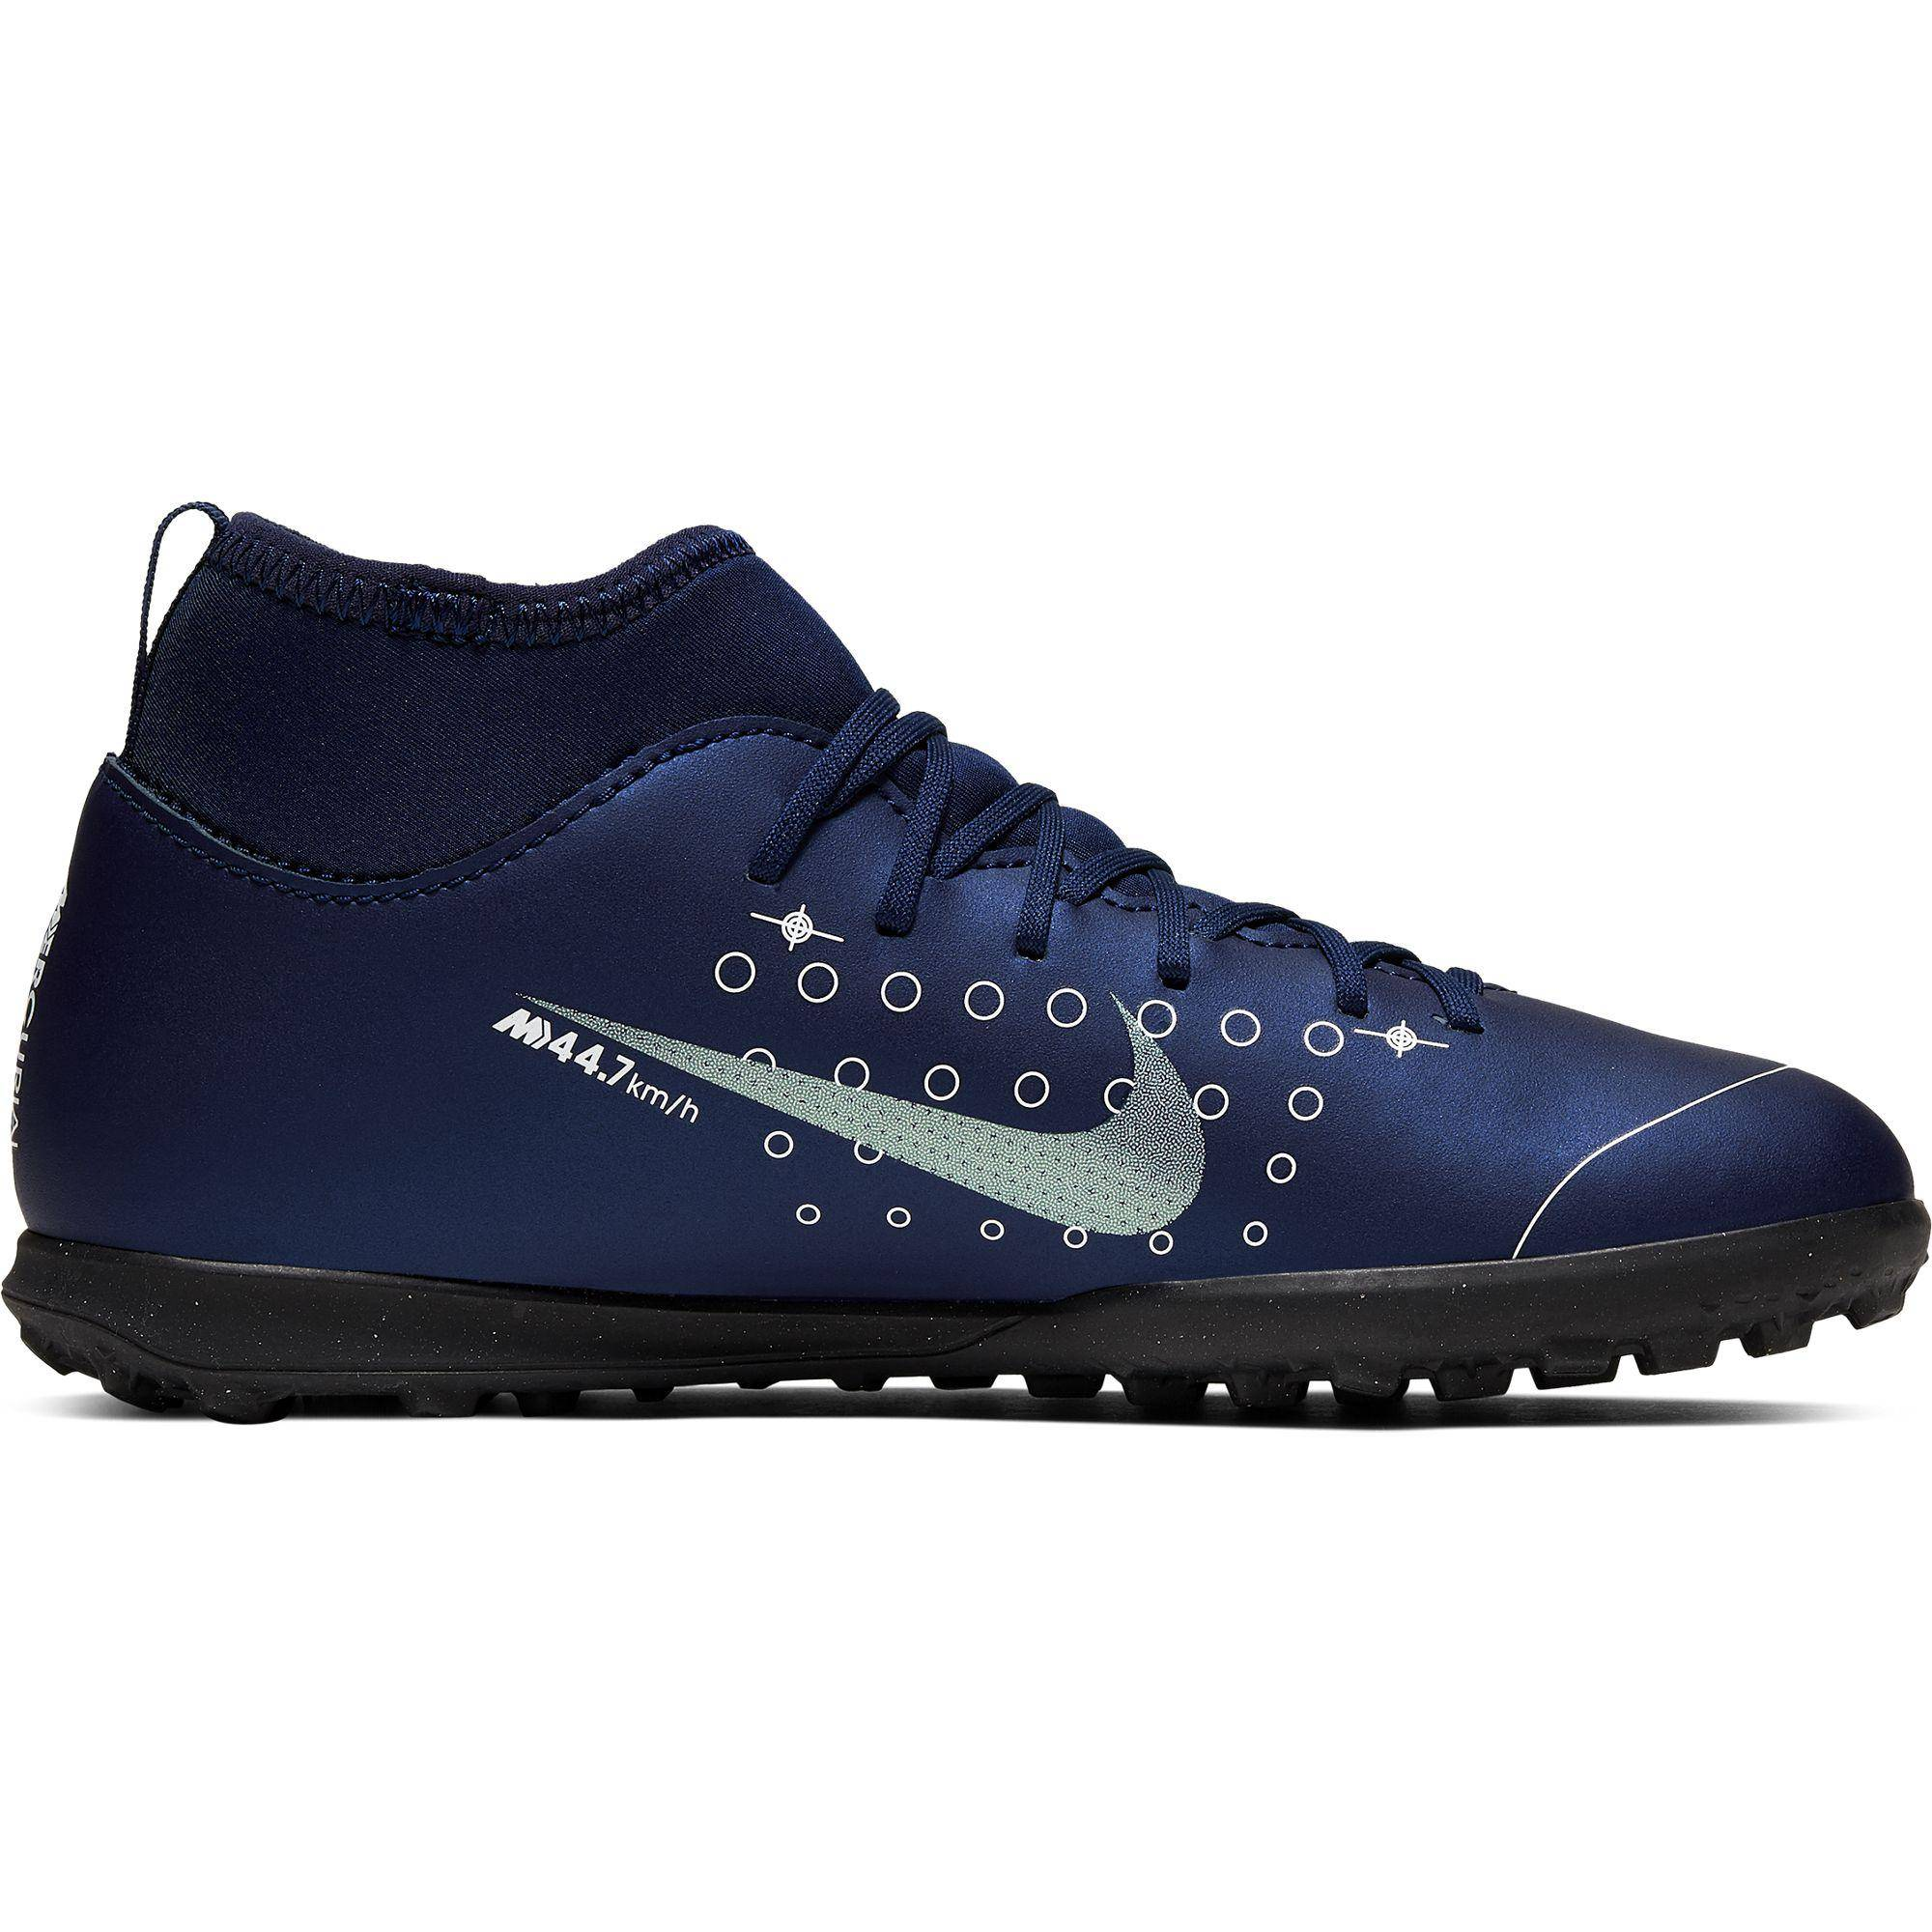 Nike SUPERFLY 7 CLUB MDS TF Nike  Junior  19/20